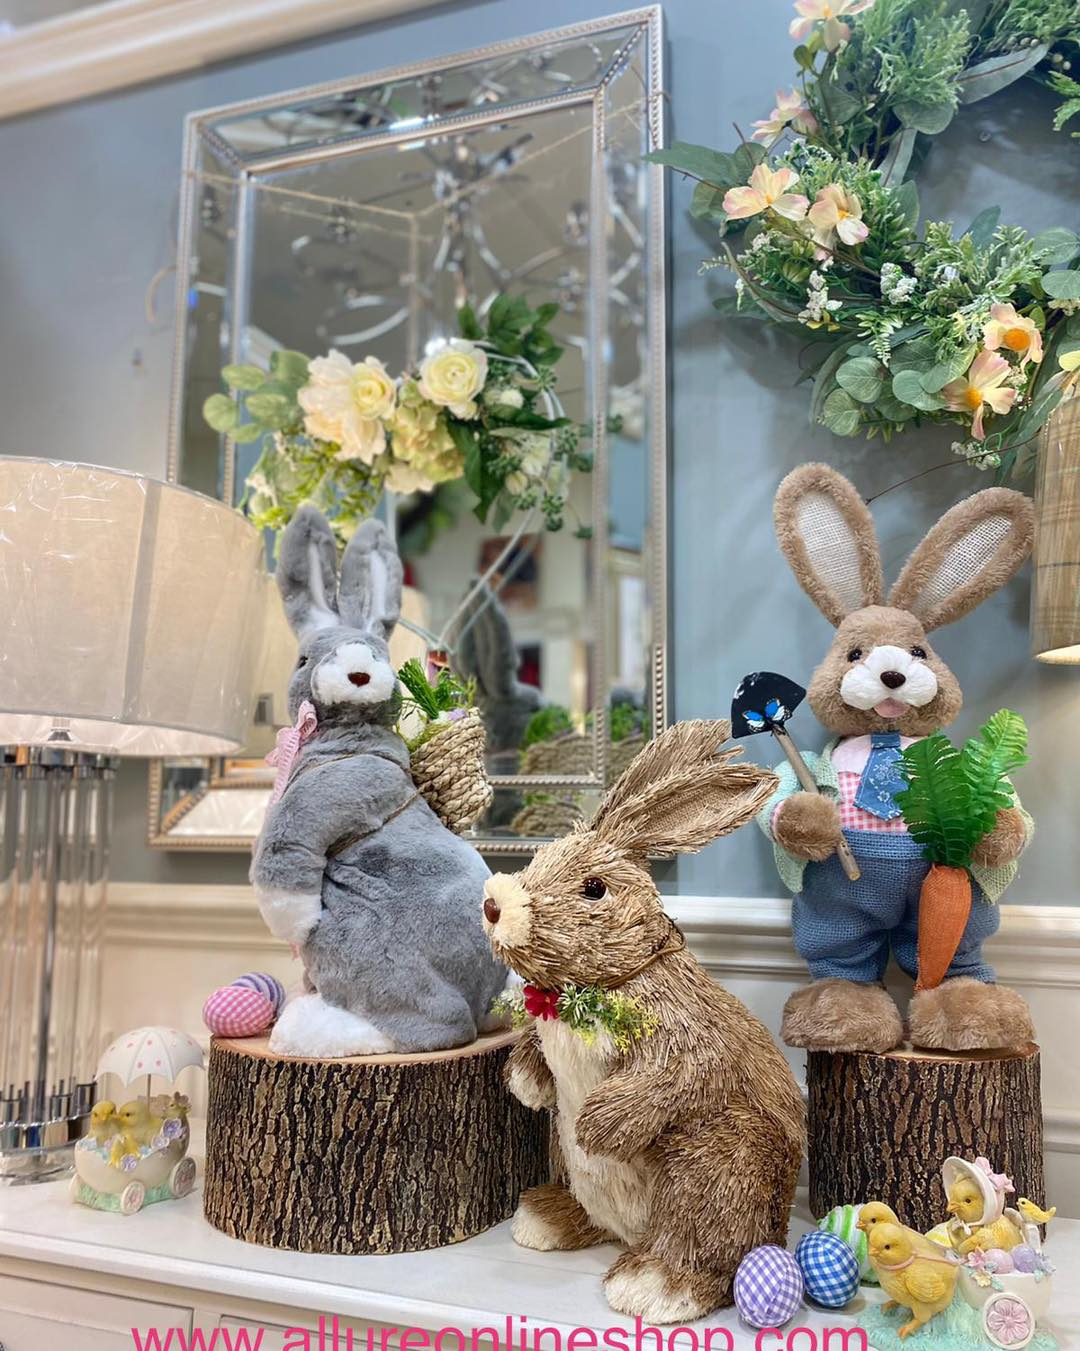 Allure Cute Easter Items 2021